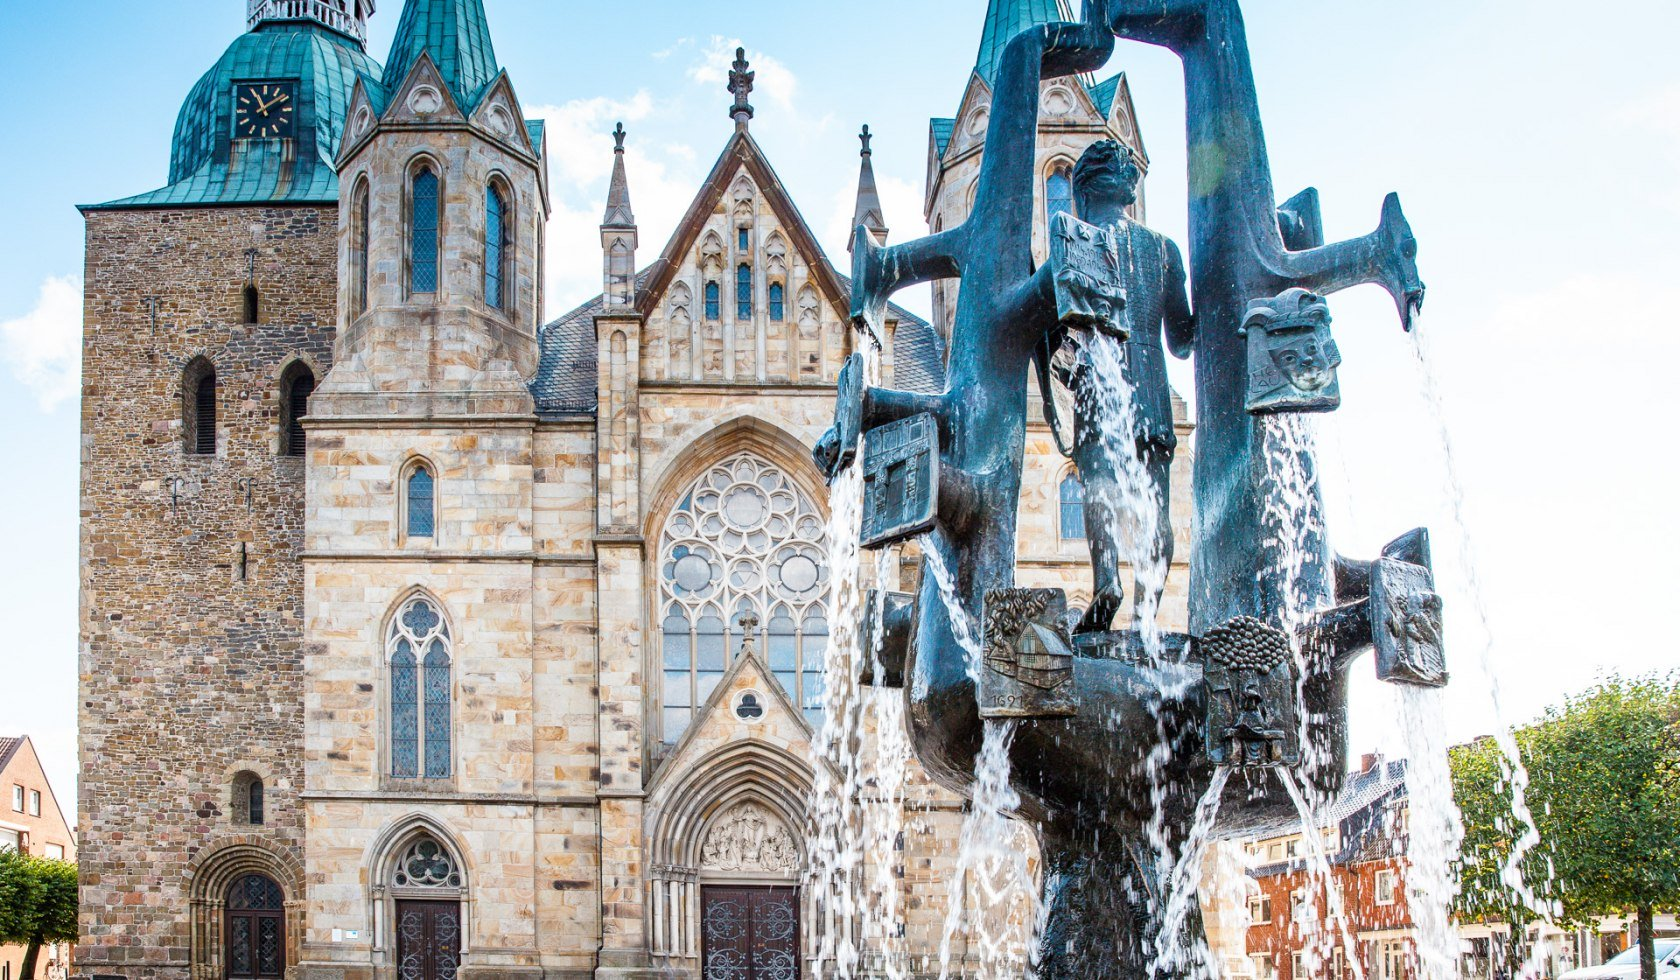 Fountain in front of the cathedral in Damme